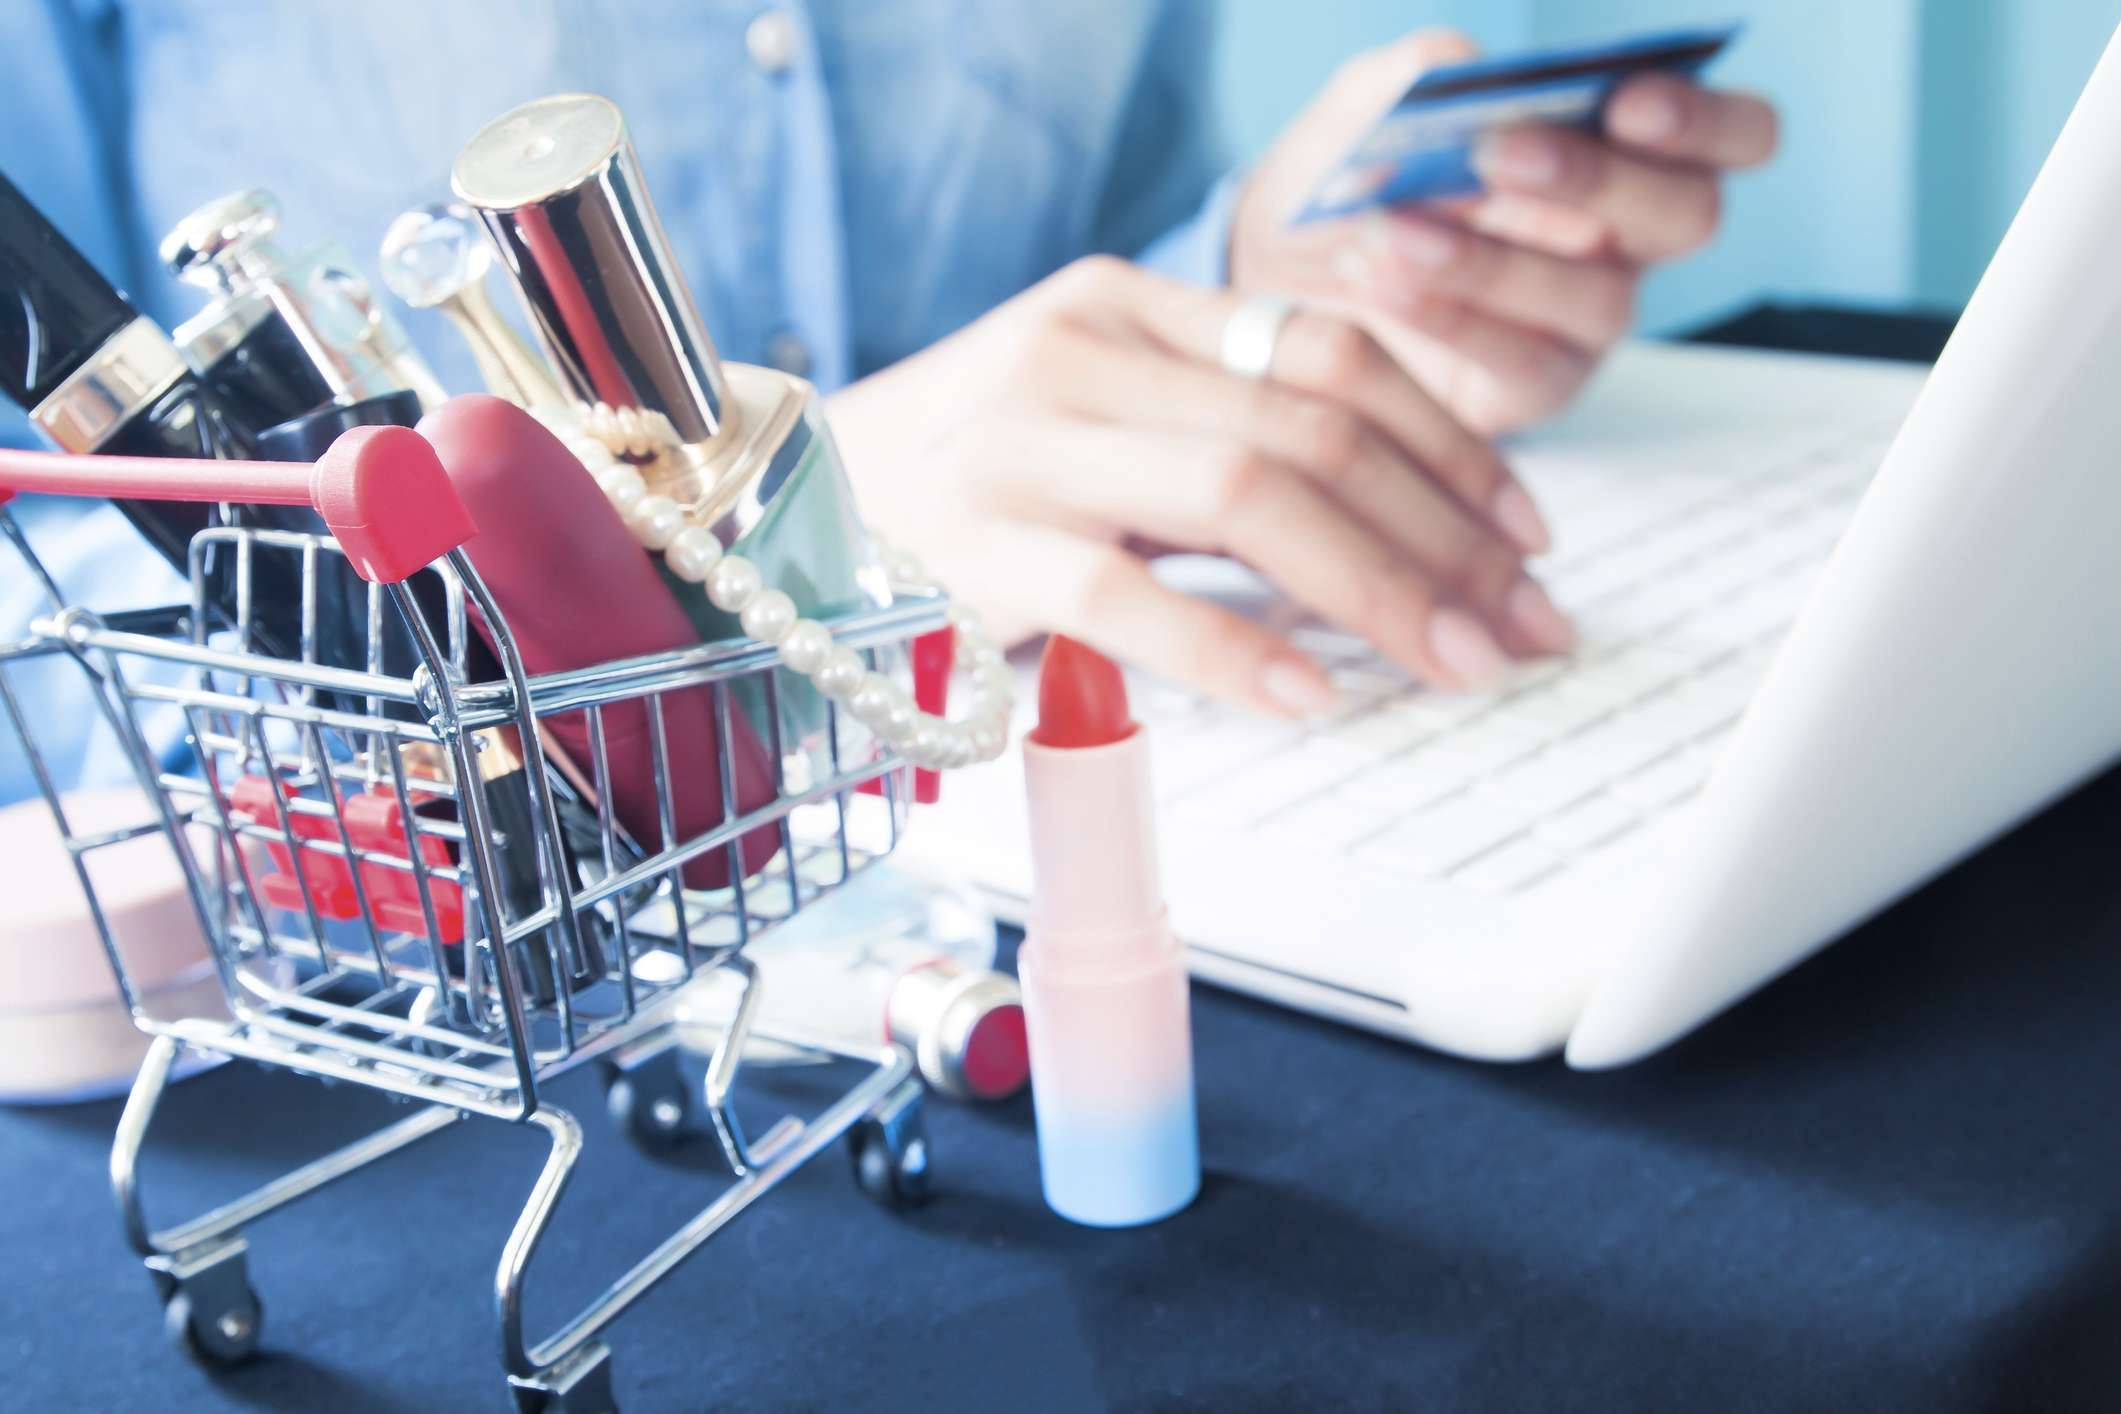 Woman On A Computer With Beauty Products Around